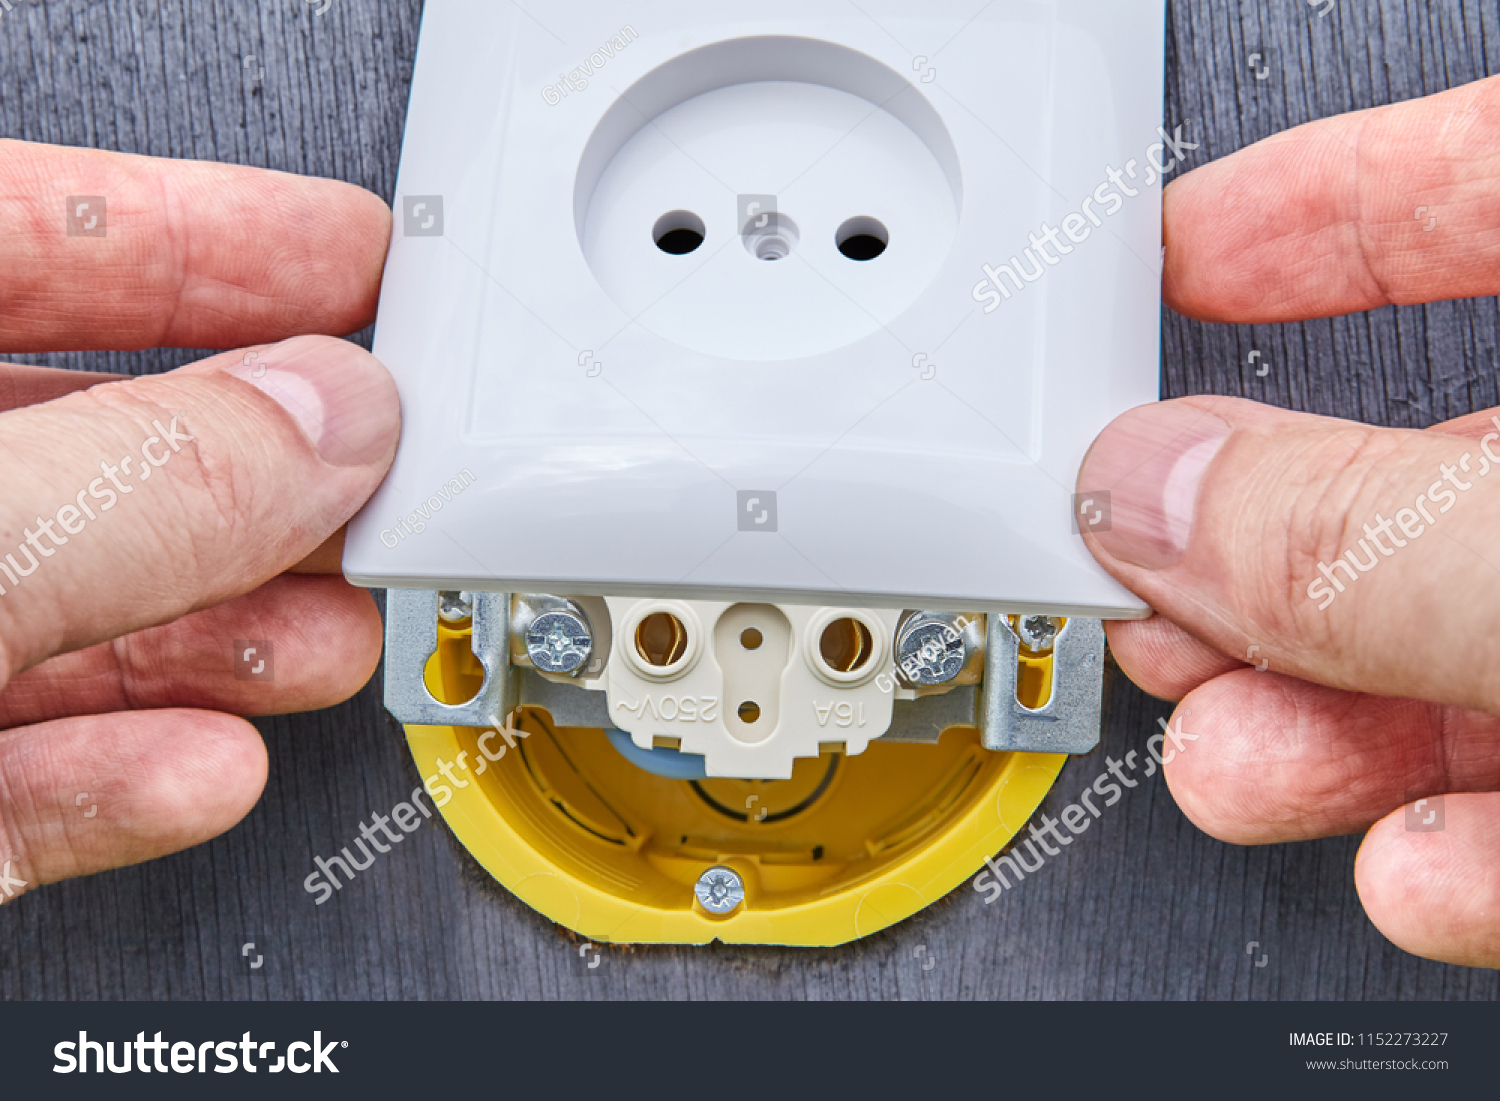 Repairs Home Electrical Wiring Replacement Wall Stock Photo Edit Now 1152273227